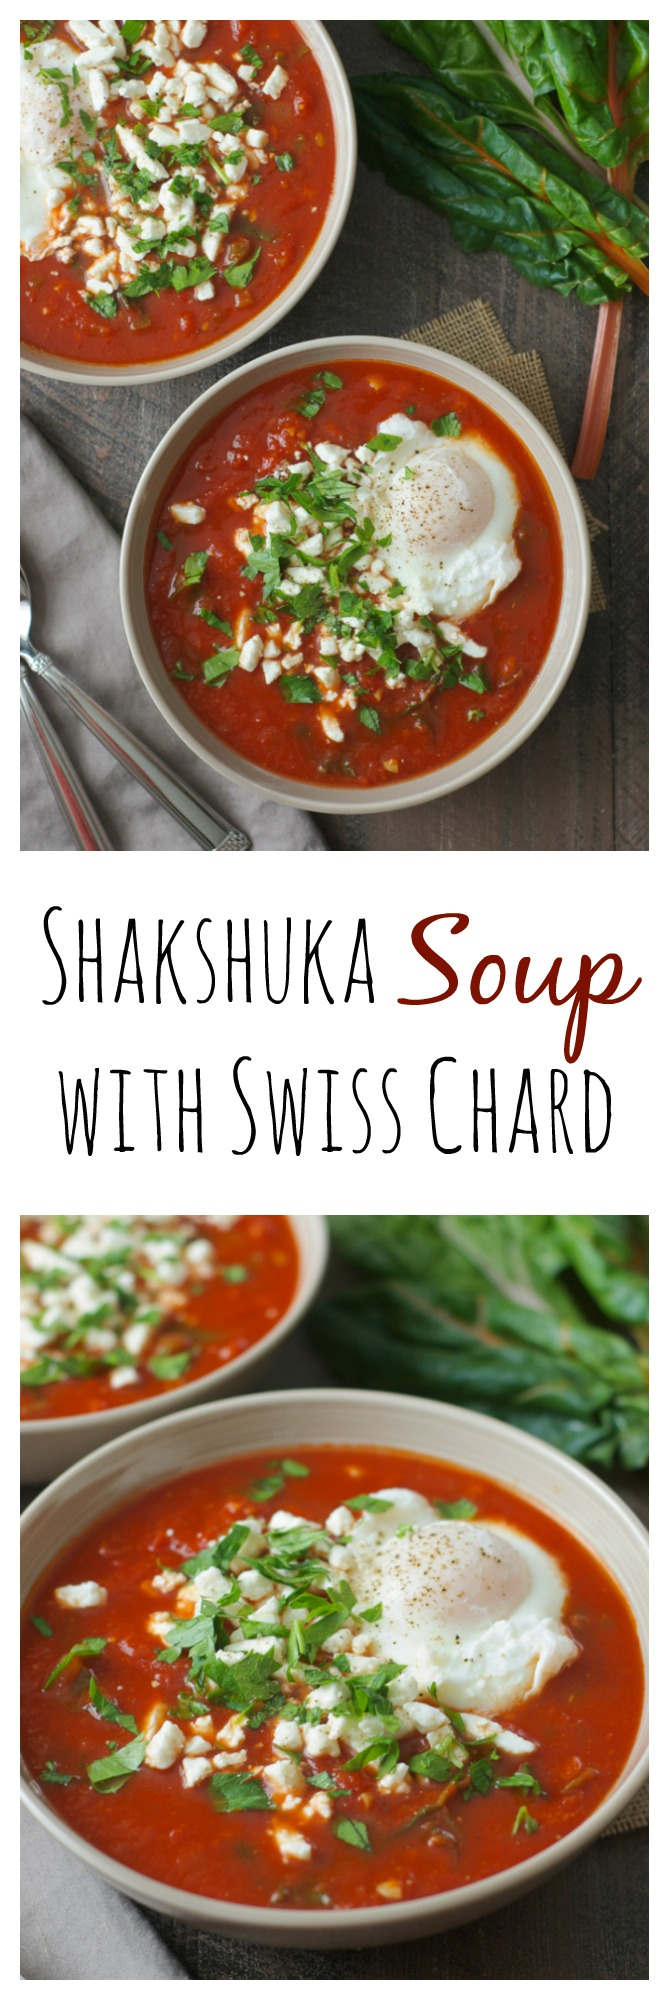 The best part of shakshuka (eggs poached in tomatoes, peppers, and spices) is the SAUCE, so why not eat a giant bowl of it in soup form? This recipe is simple enough for a weeknight, and freezer-friendly too!